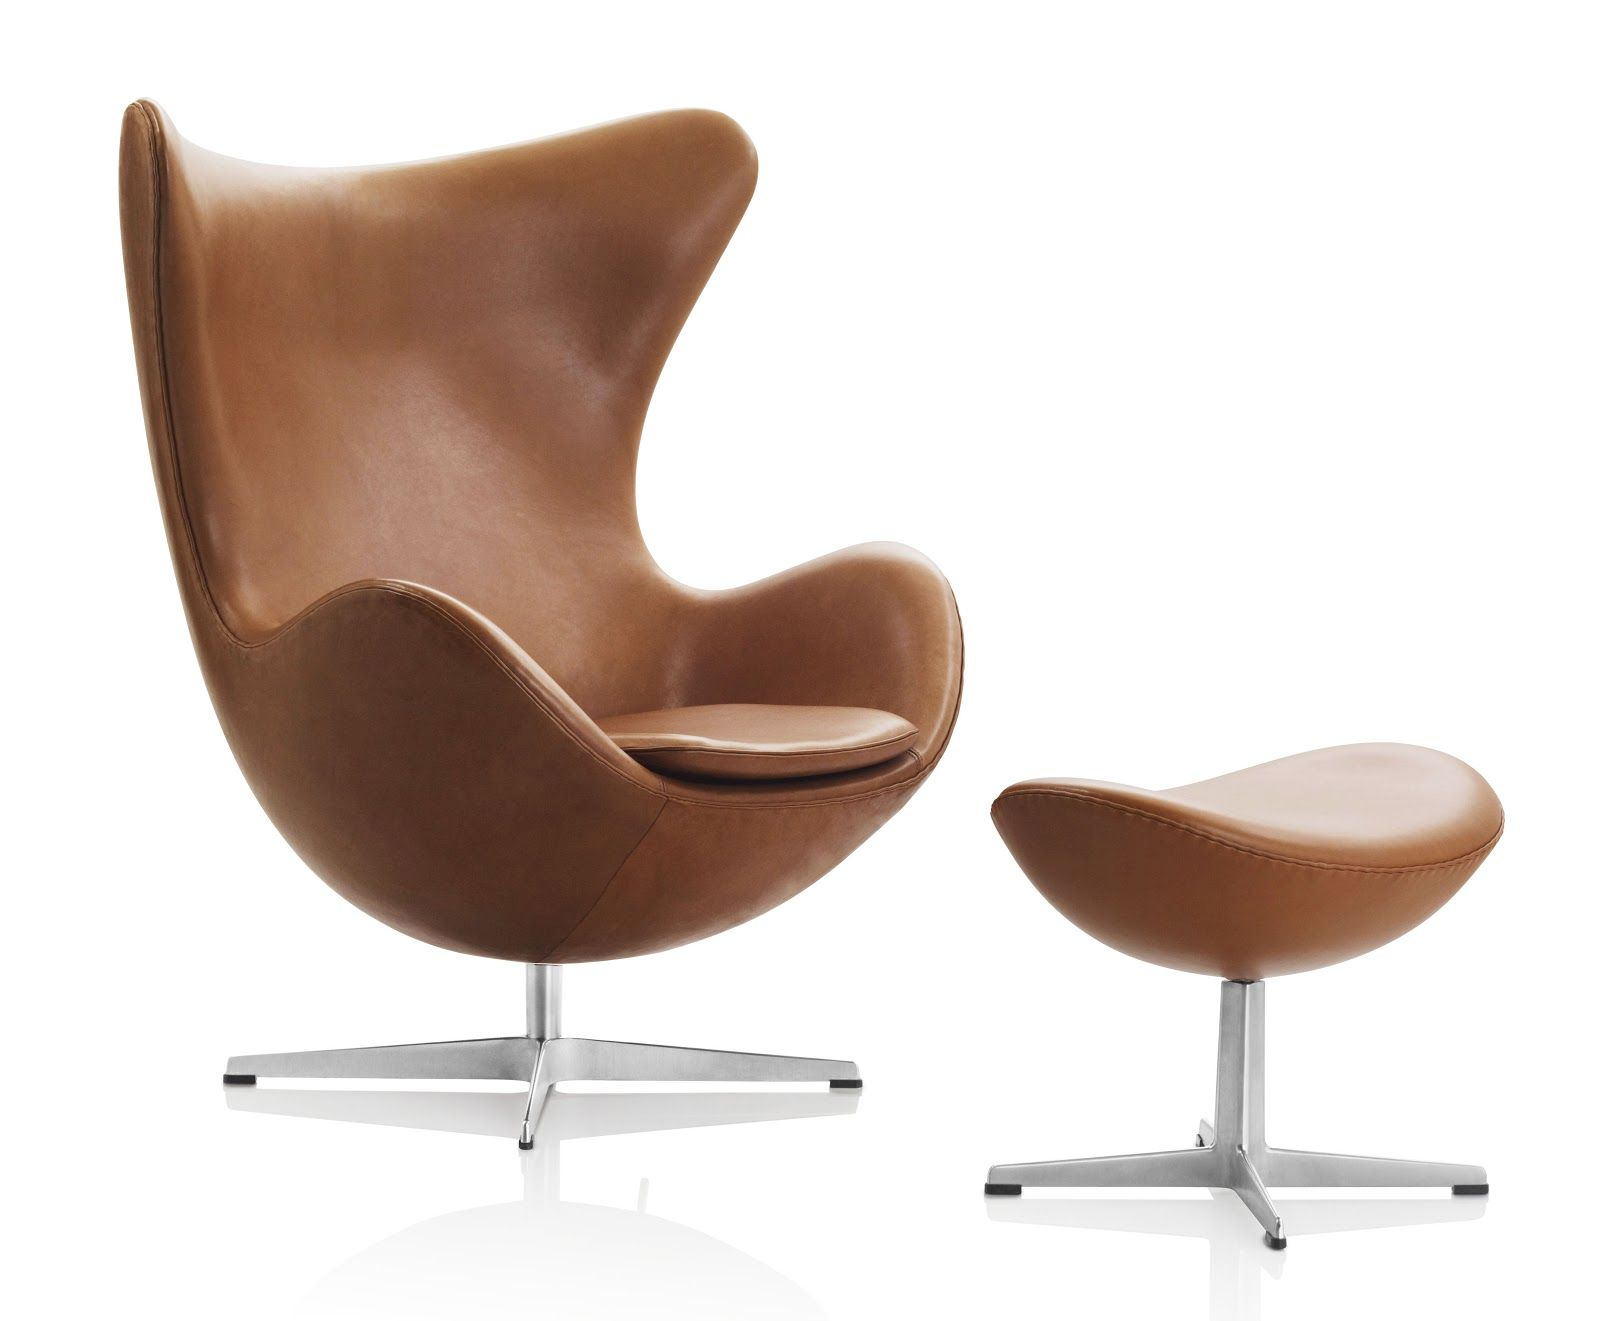 egg chair arne jacobsen (2)